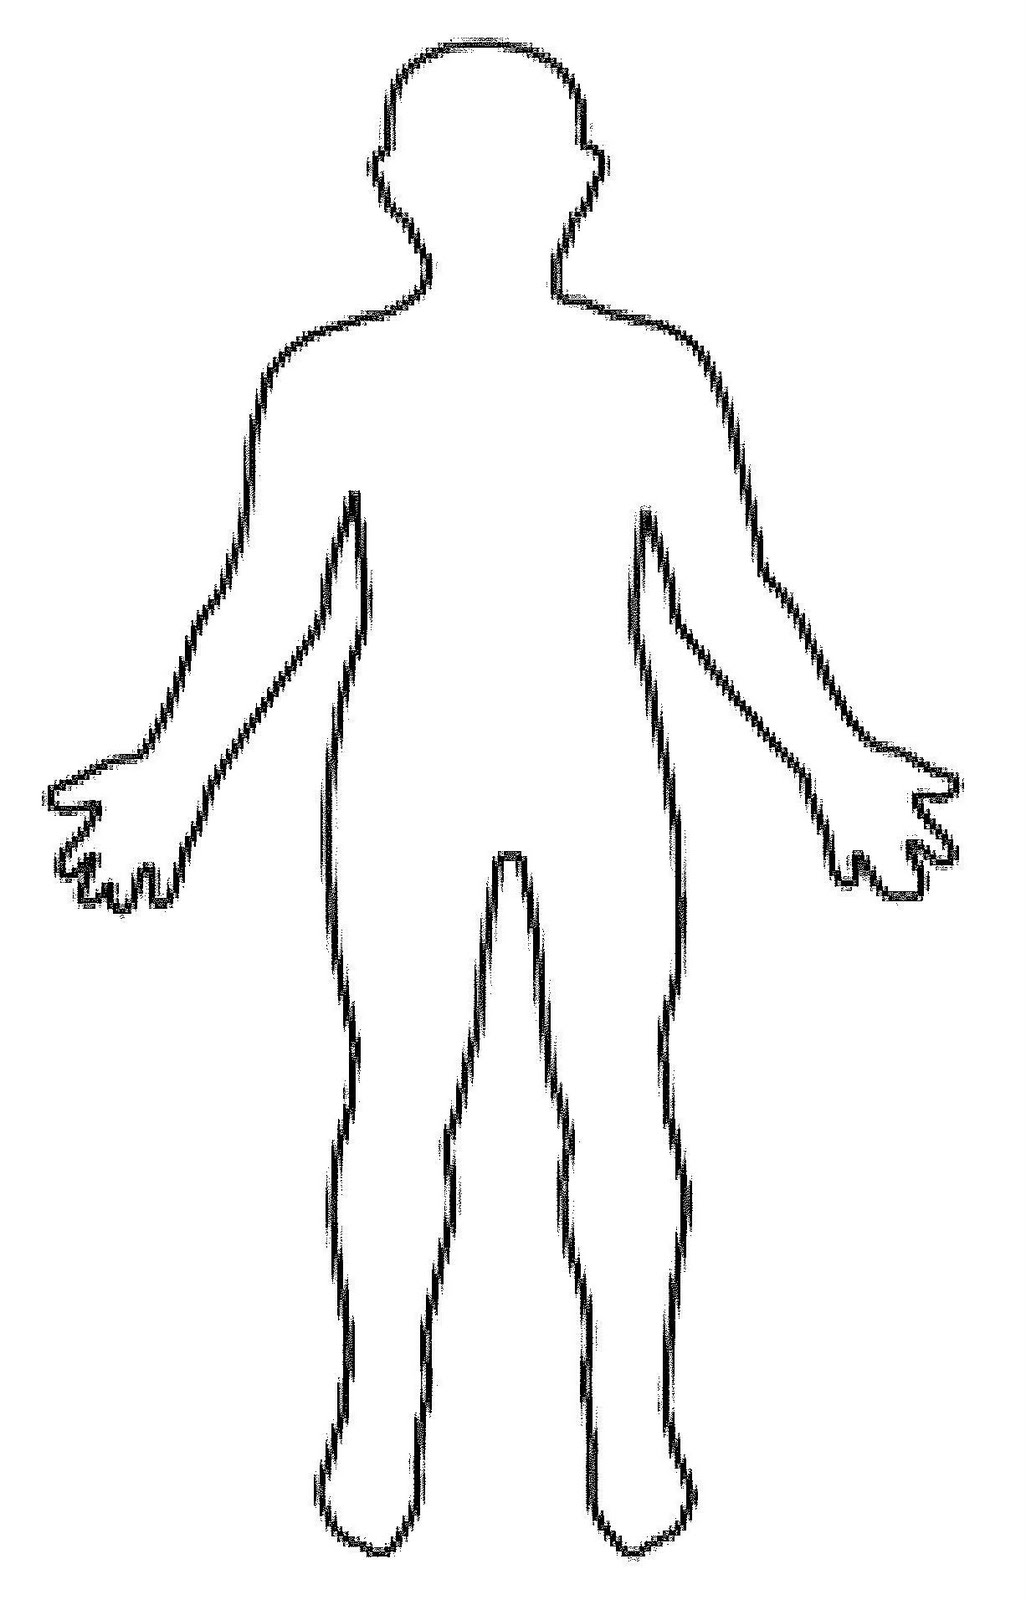 clipart human figure - photo #10